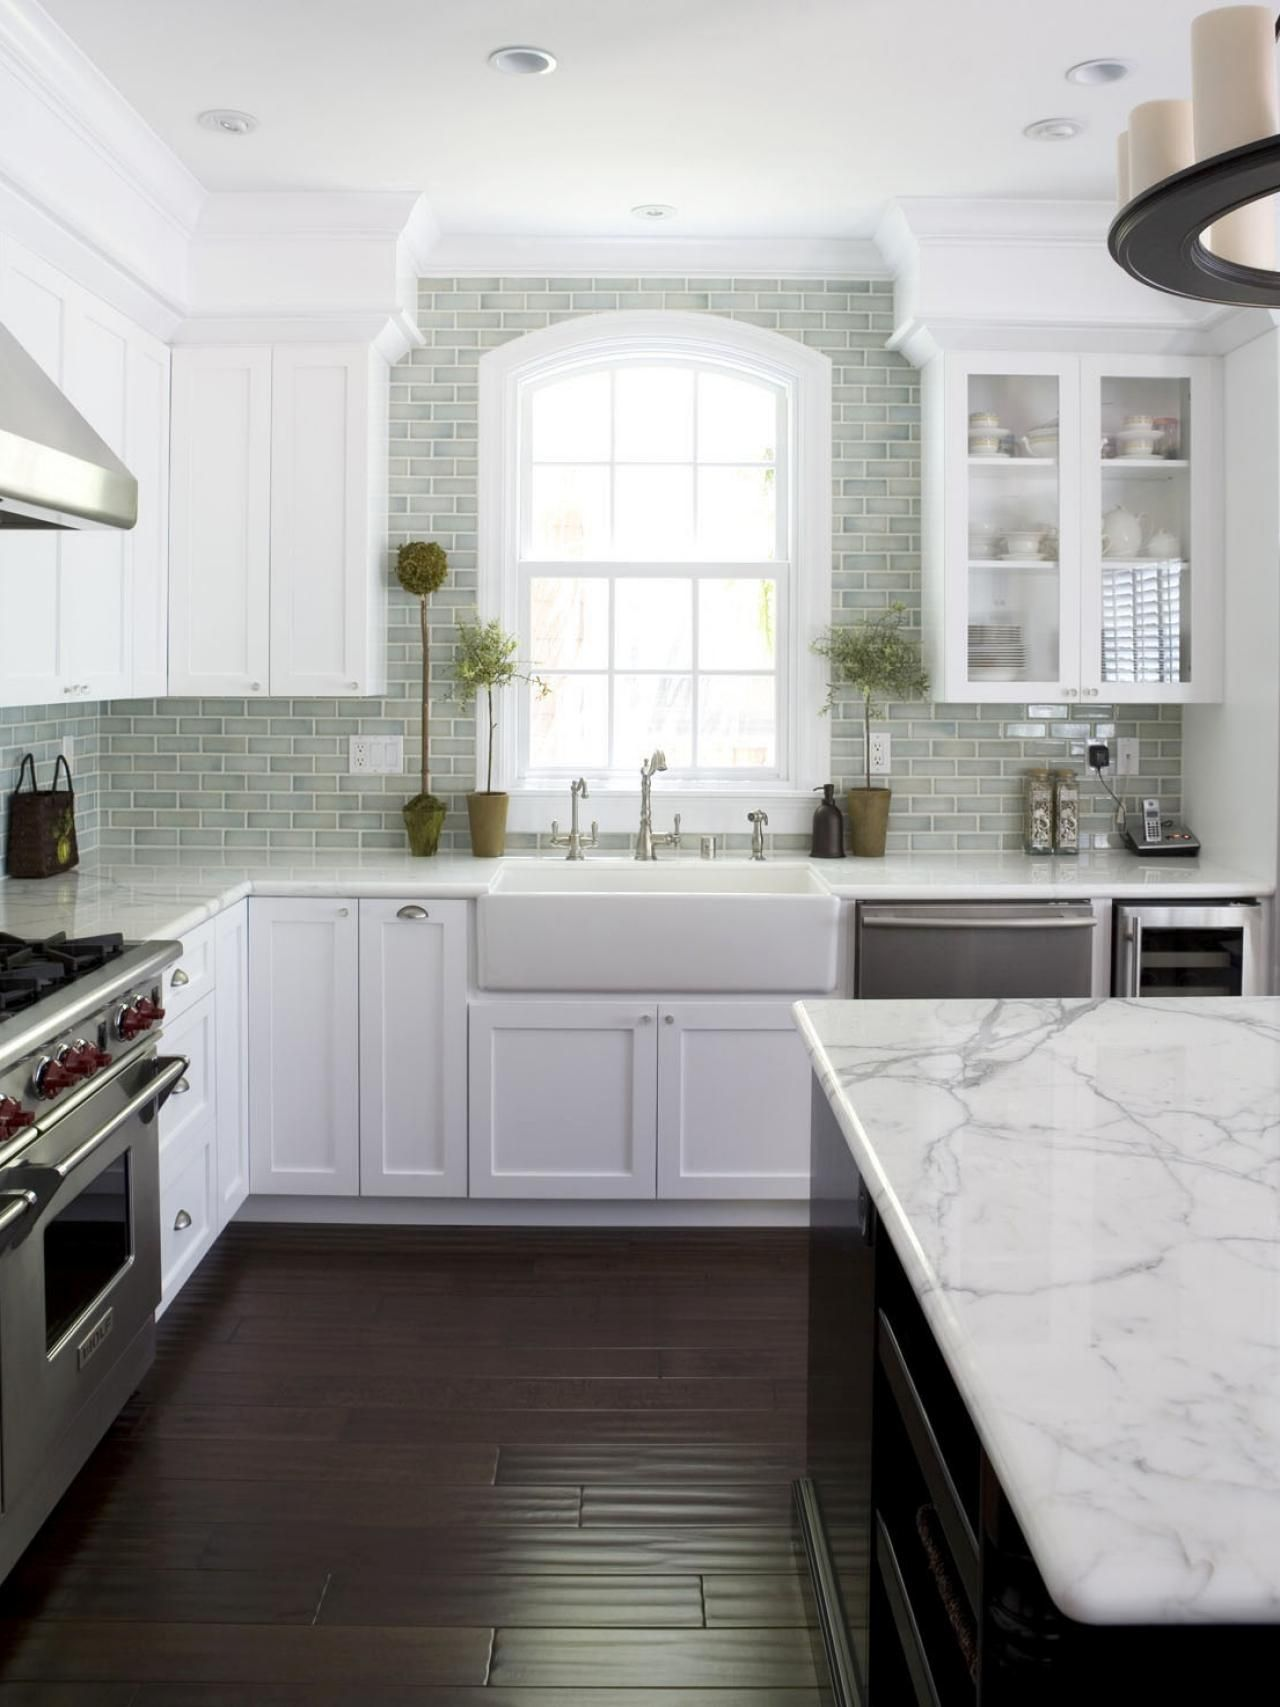 white kitchen countertops table and chair set our 55 favorite kitchens dream home pinterest 40 ideas design with cabinets islands backsplashes hgtv